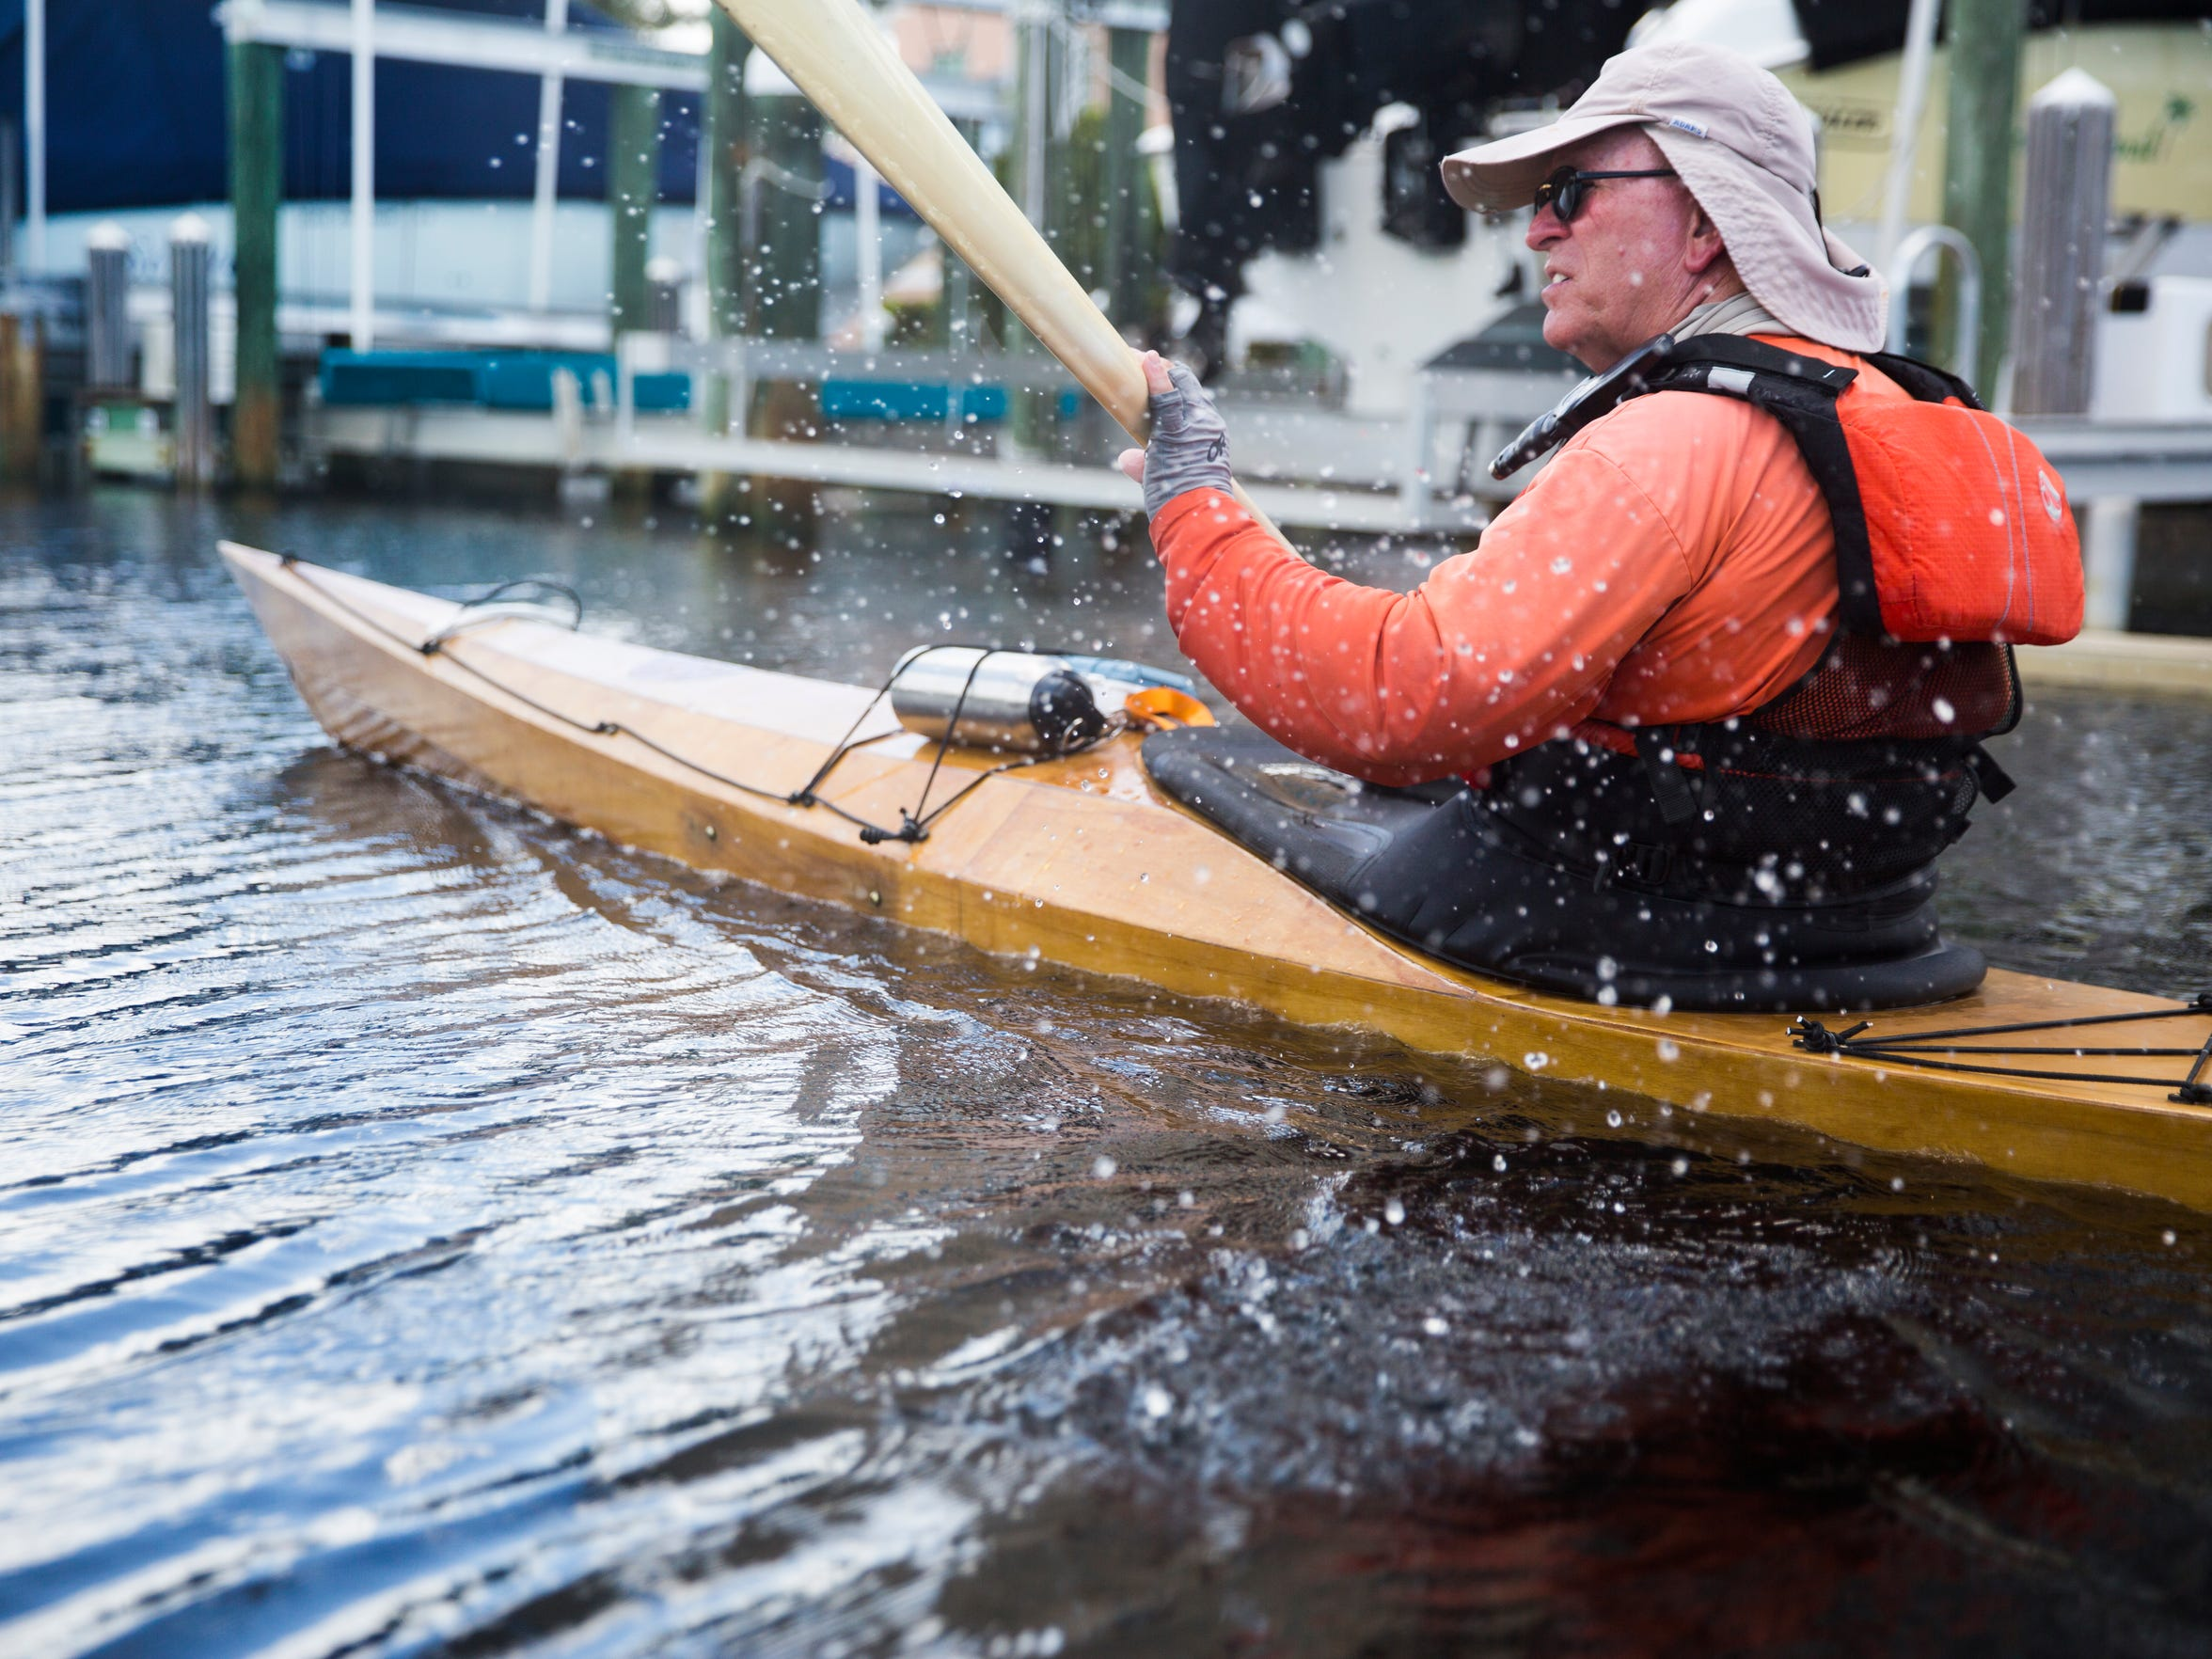 Mike Devlin paddles back into Wiggins Pass on Wednesday, Aug. 9, 2017, in North Naples. Devlin runs a kayak tour business and gives lessons.